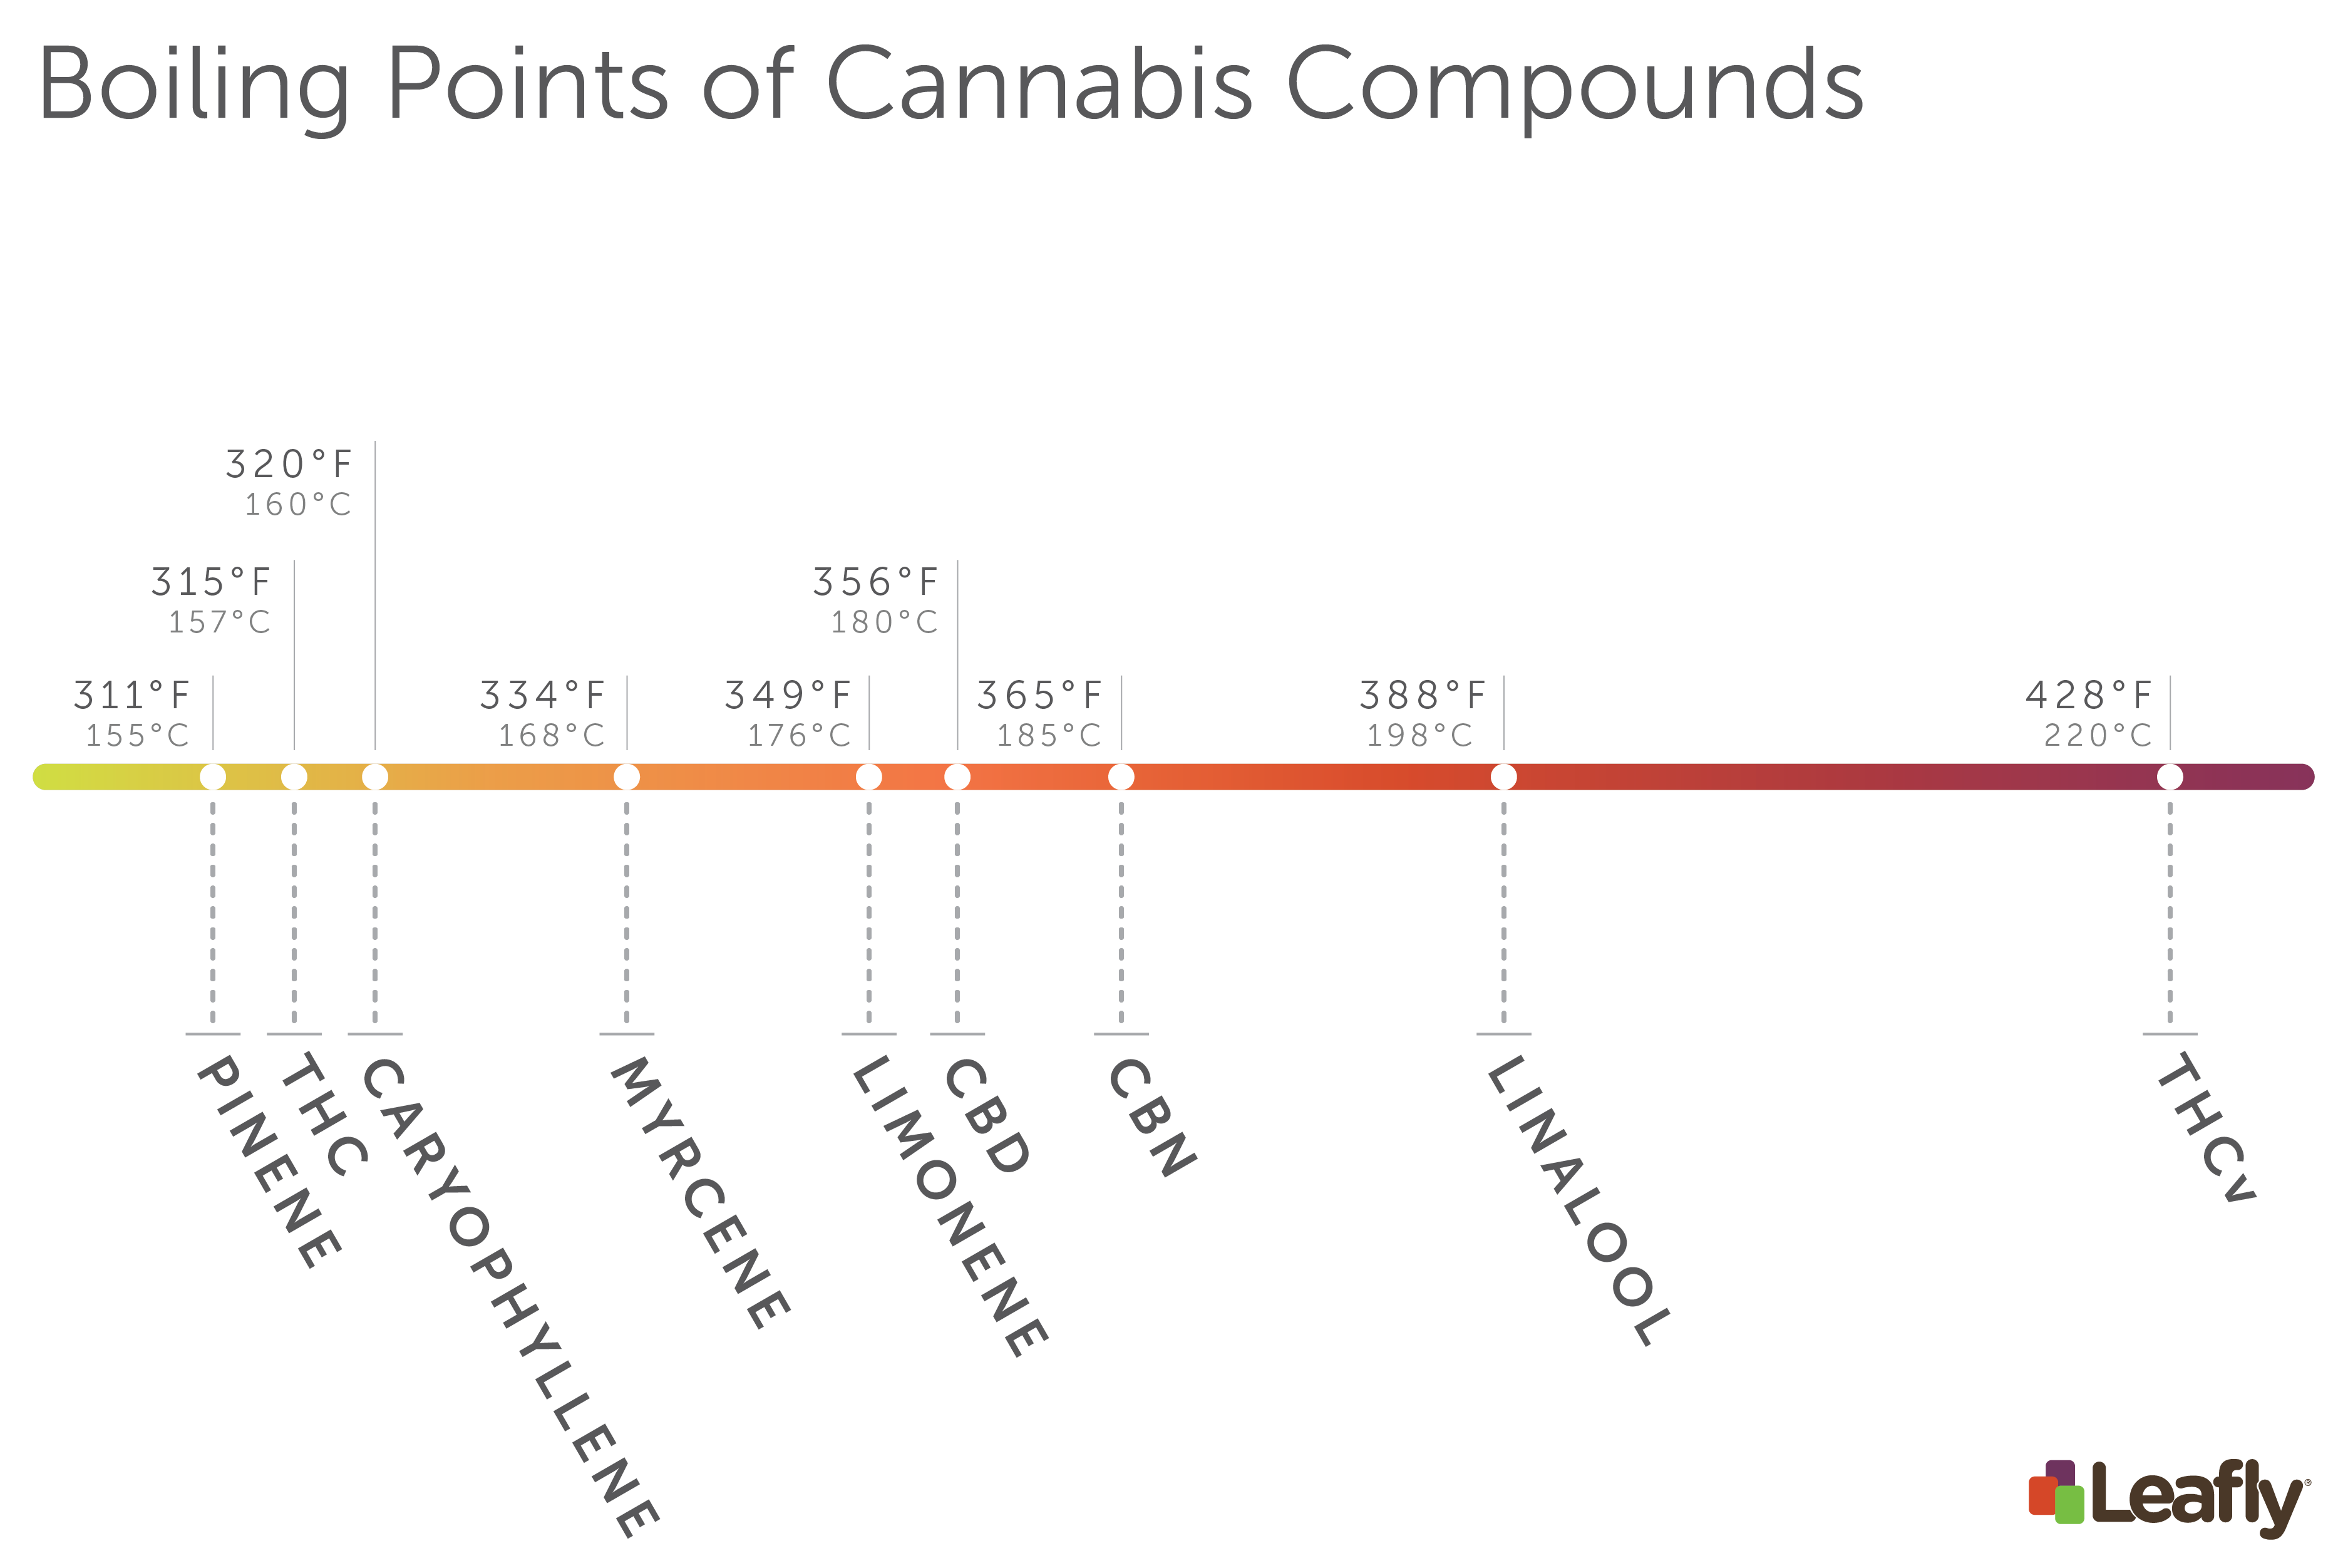 Leafly Boiling Points of Cannabis Compounds